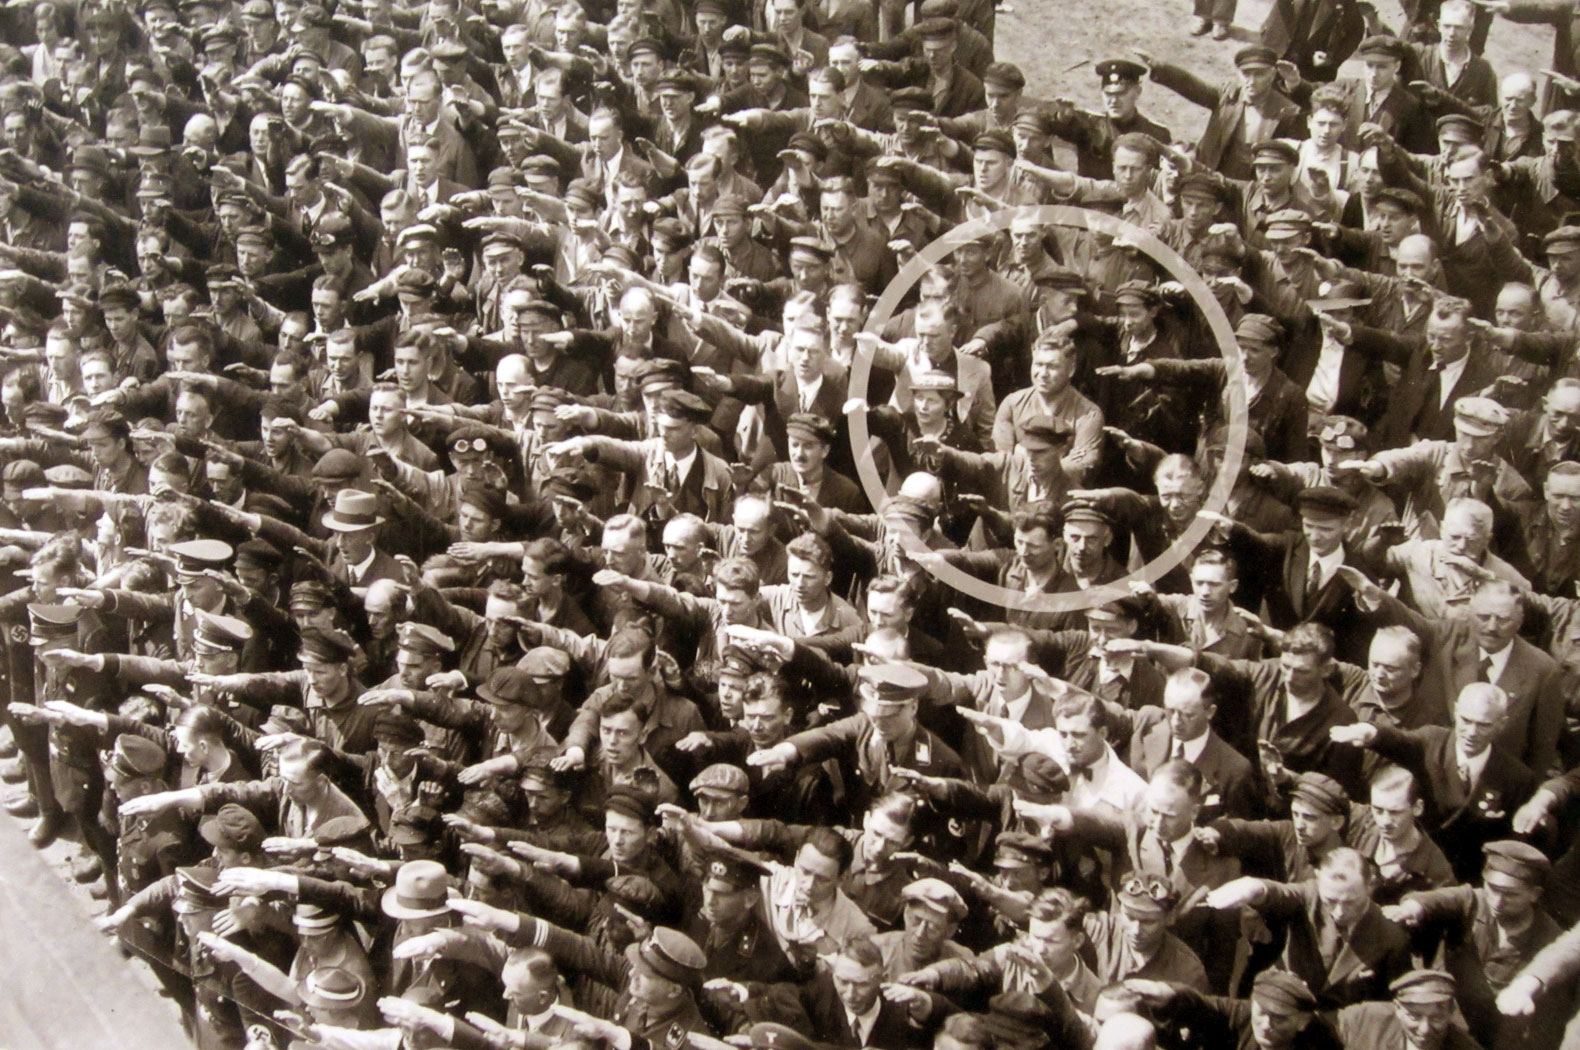 Foto famosa August Landmesser - photo famous picture